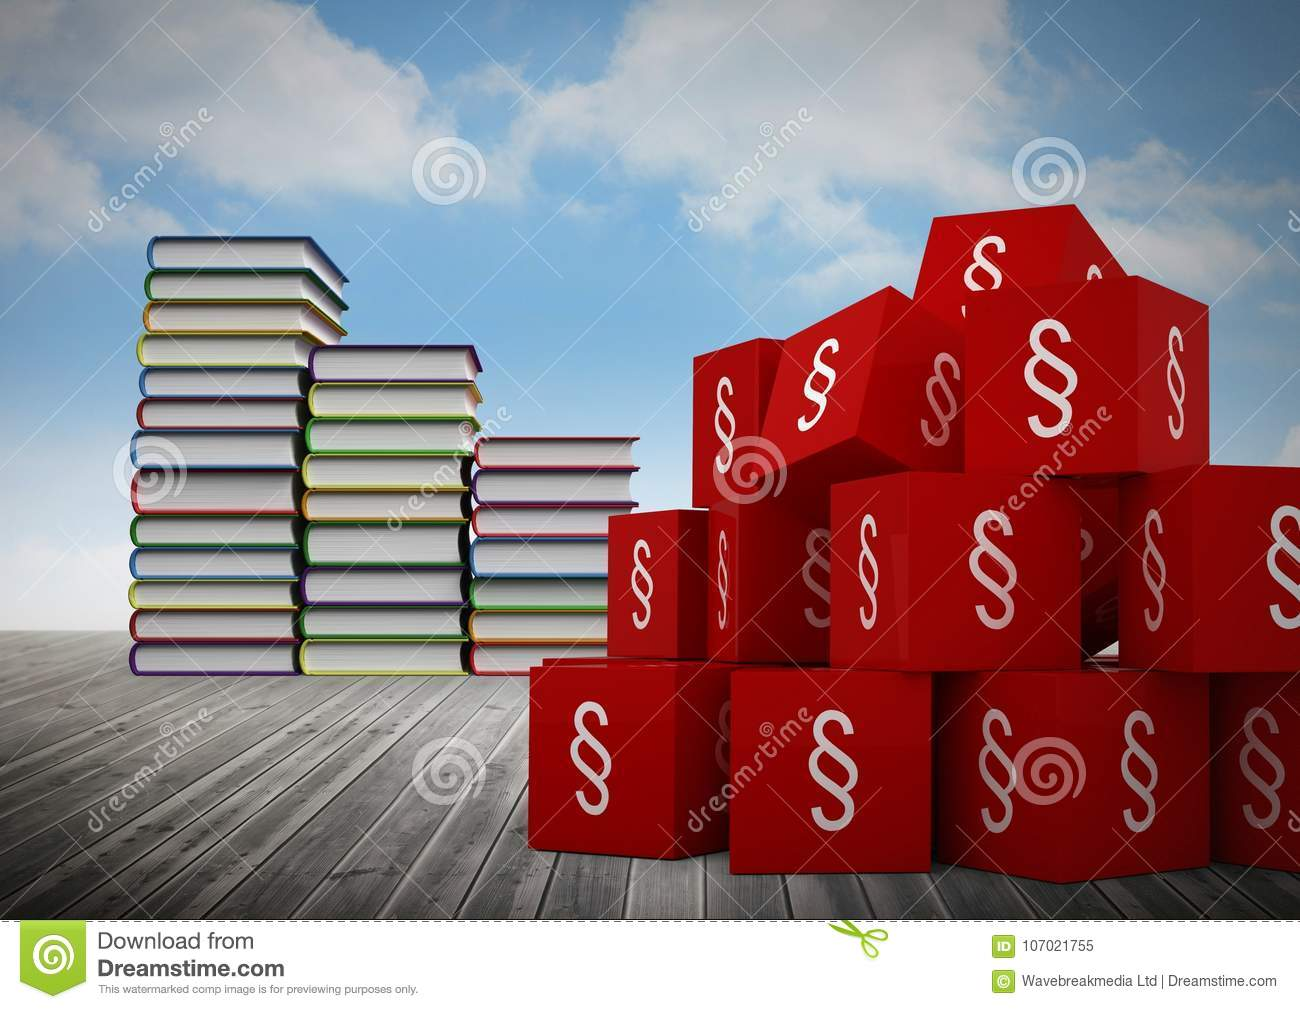 3d section symbol icons and book towers stacked stock illustration 3d section symbol icons and book towers stacked buycottarizona Choice Image